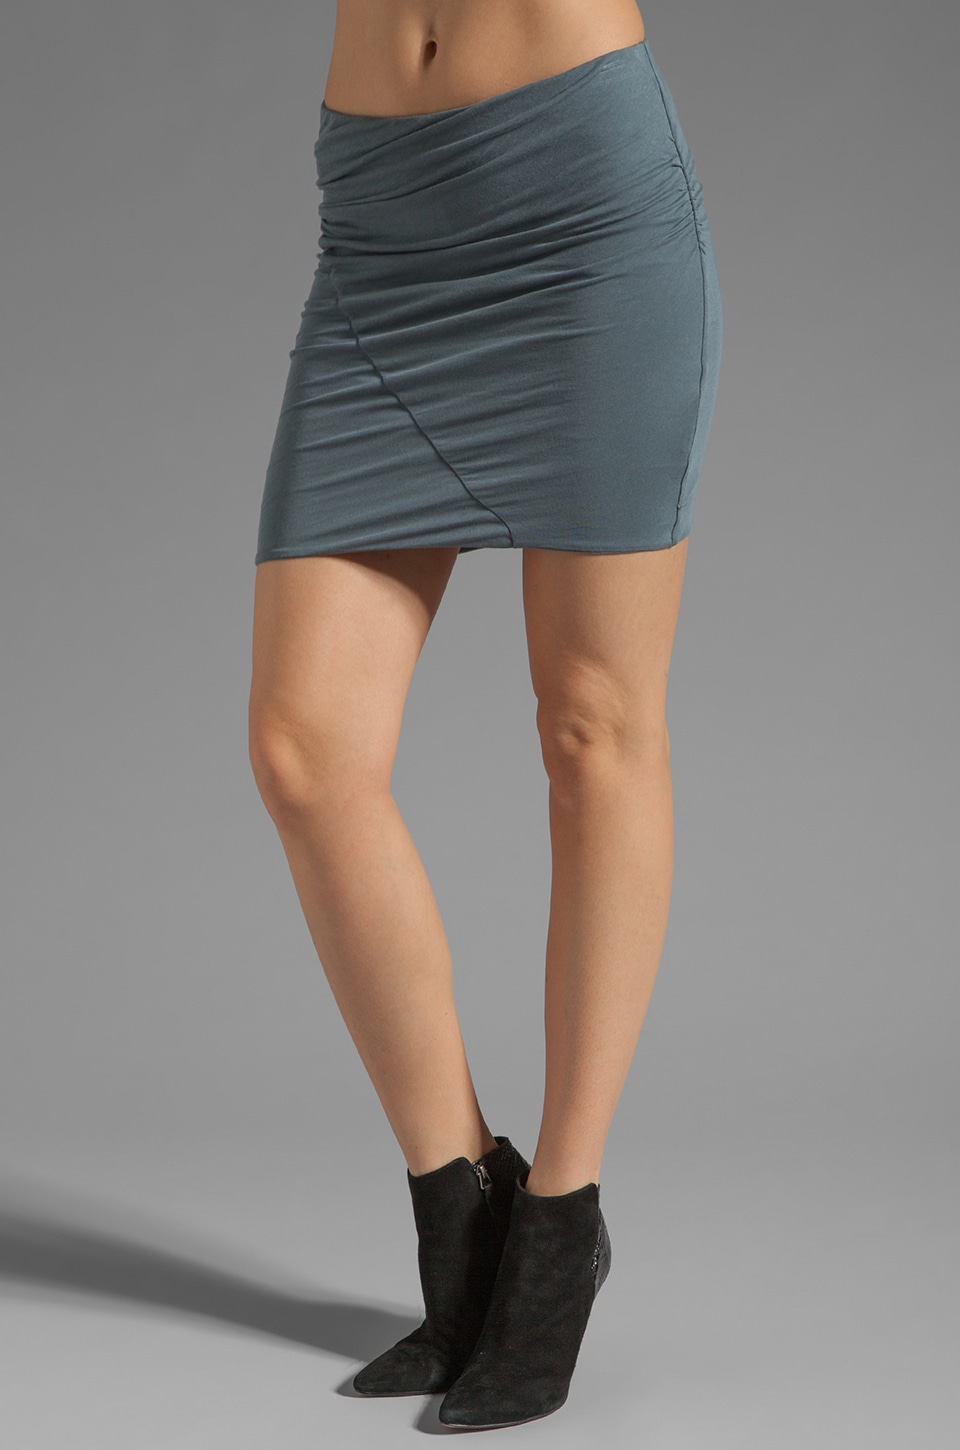 James Perse Asymmetrical Tuck Skirt in Tempest